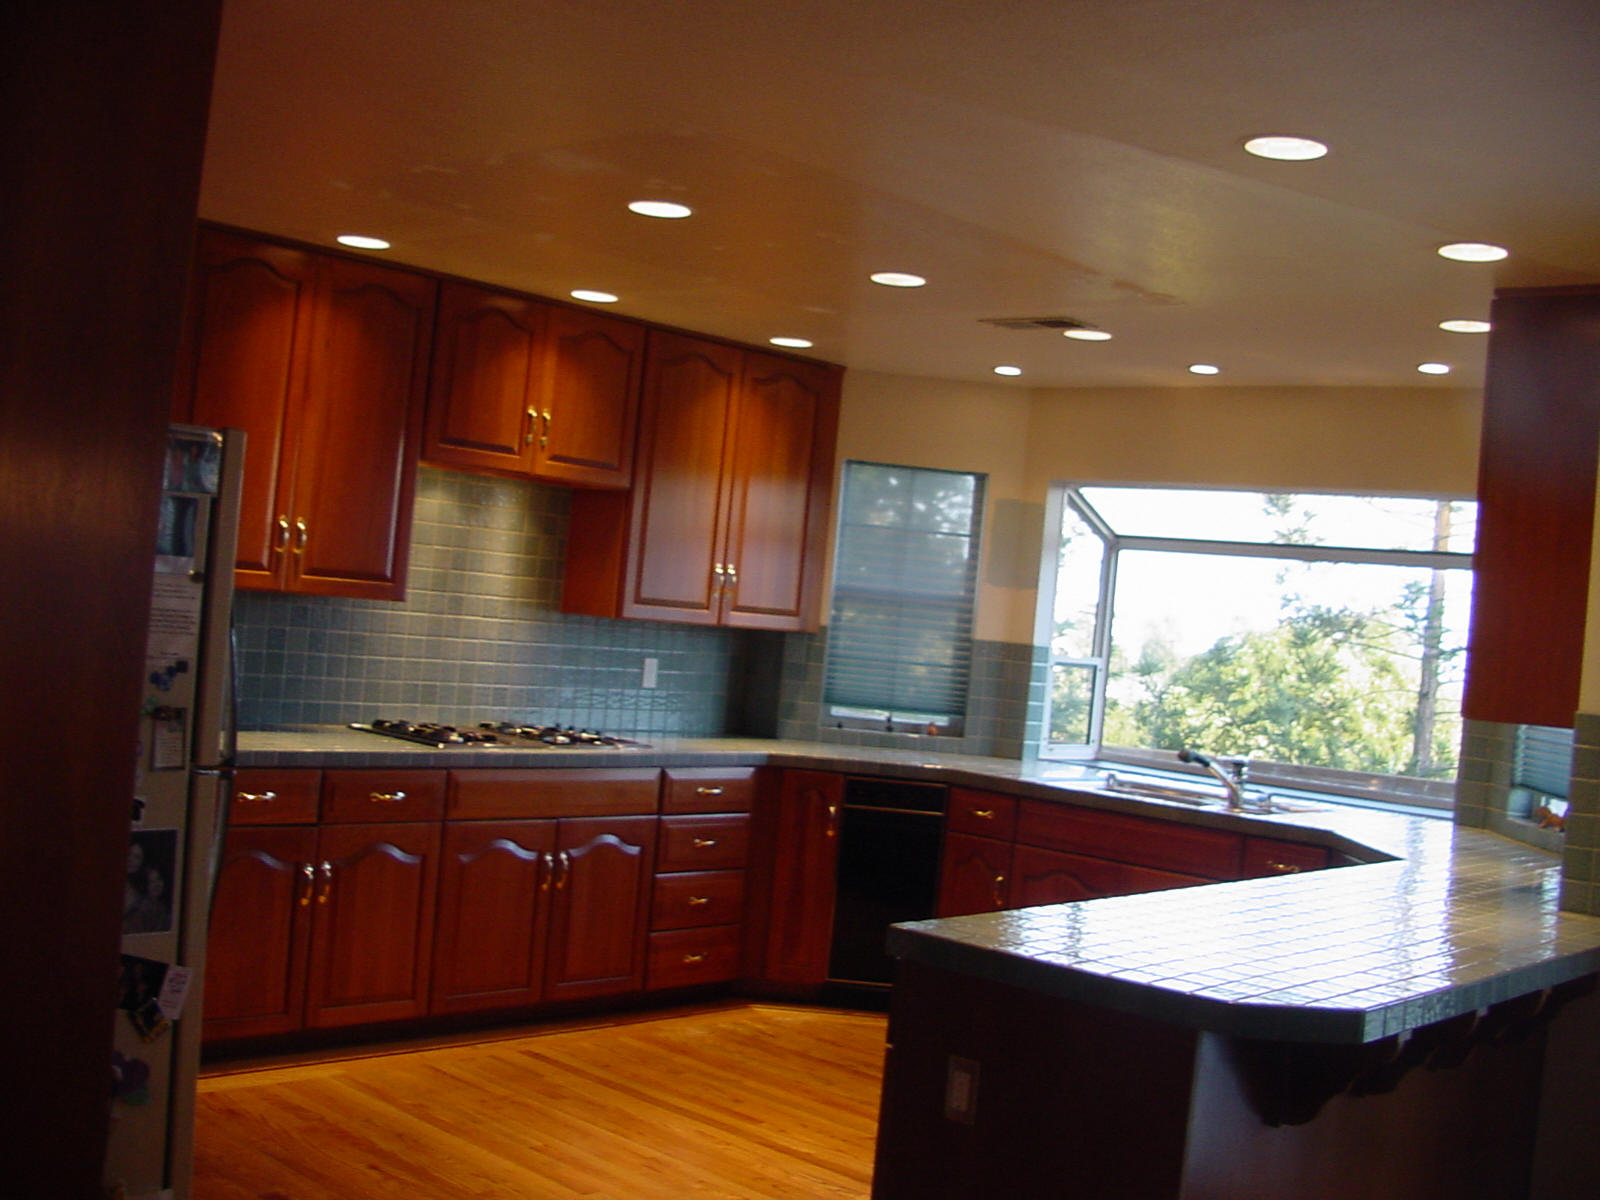 Fabulous Wooden Style Cabinets Kitchen Lighting Design Ideas Viahouse Com